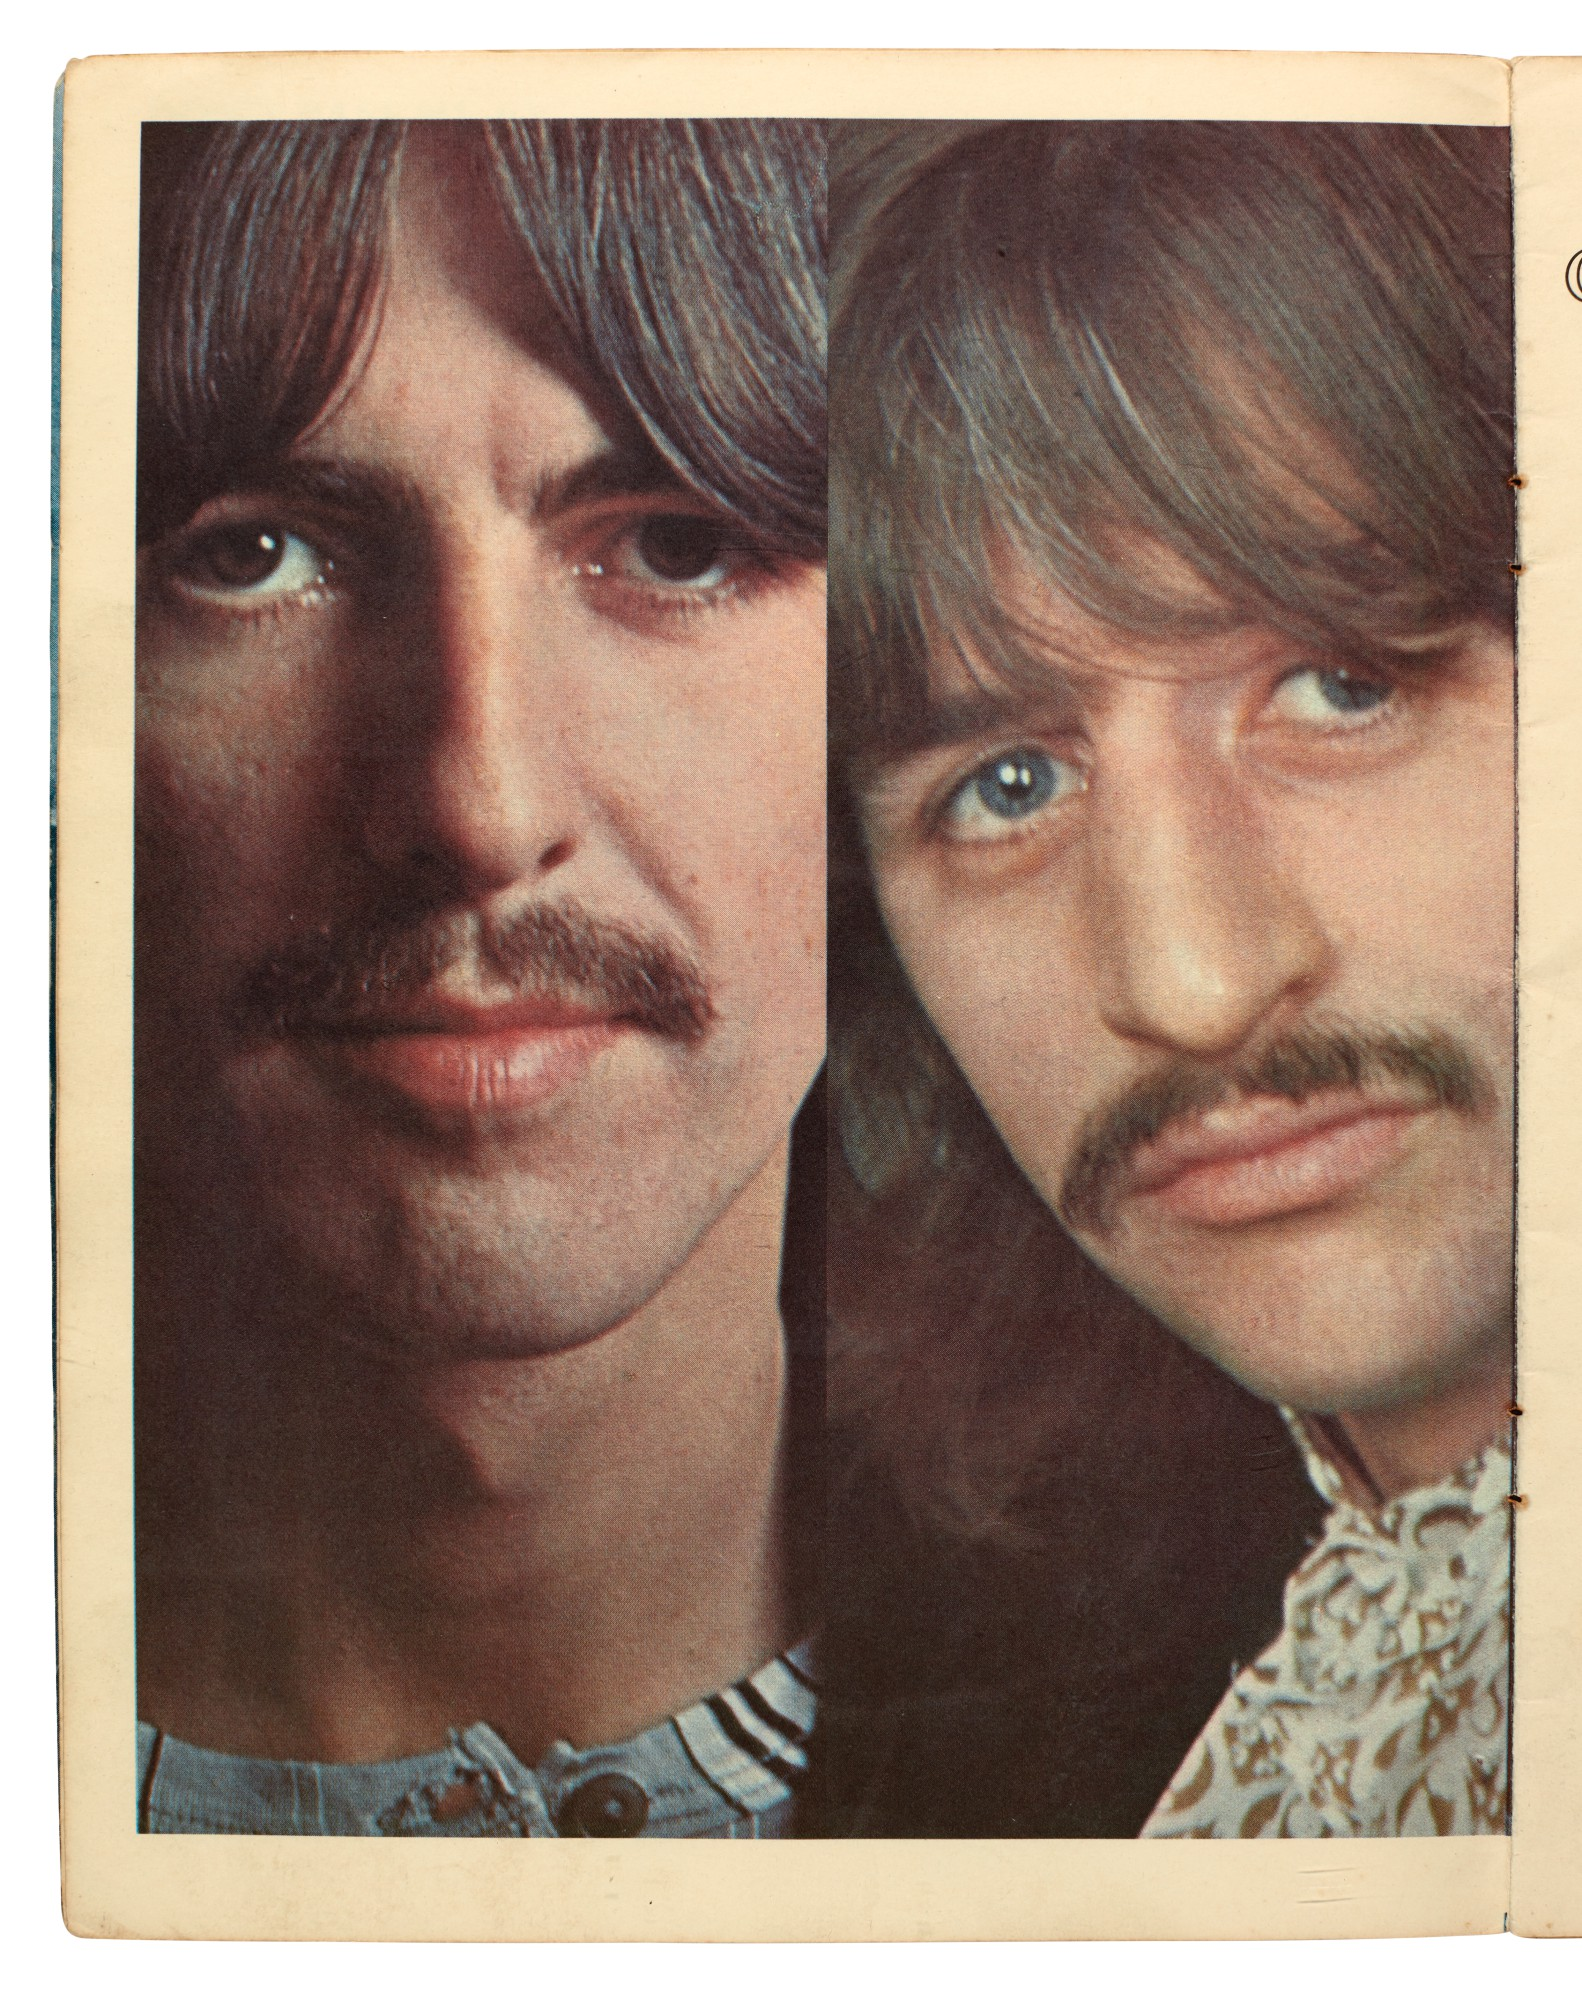 The Beatles Publicity Material Including Photos And Poster 1967 1971 The Beatles Books Manuscripts Sotheby S